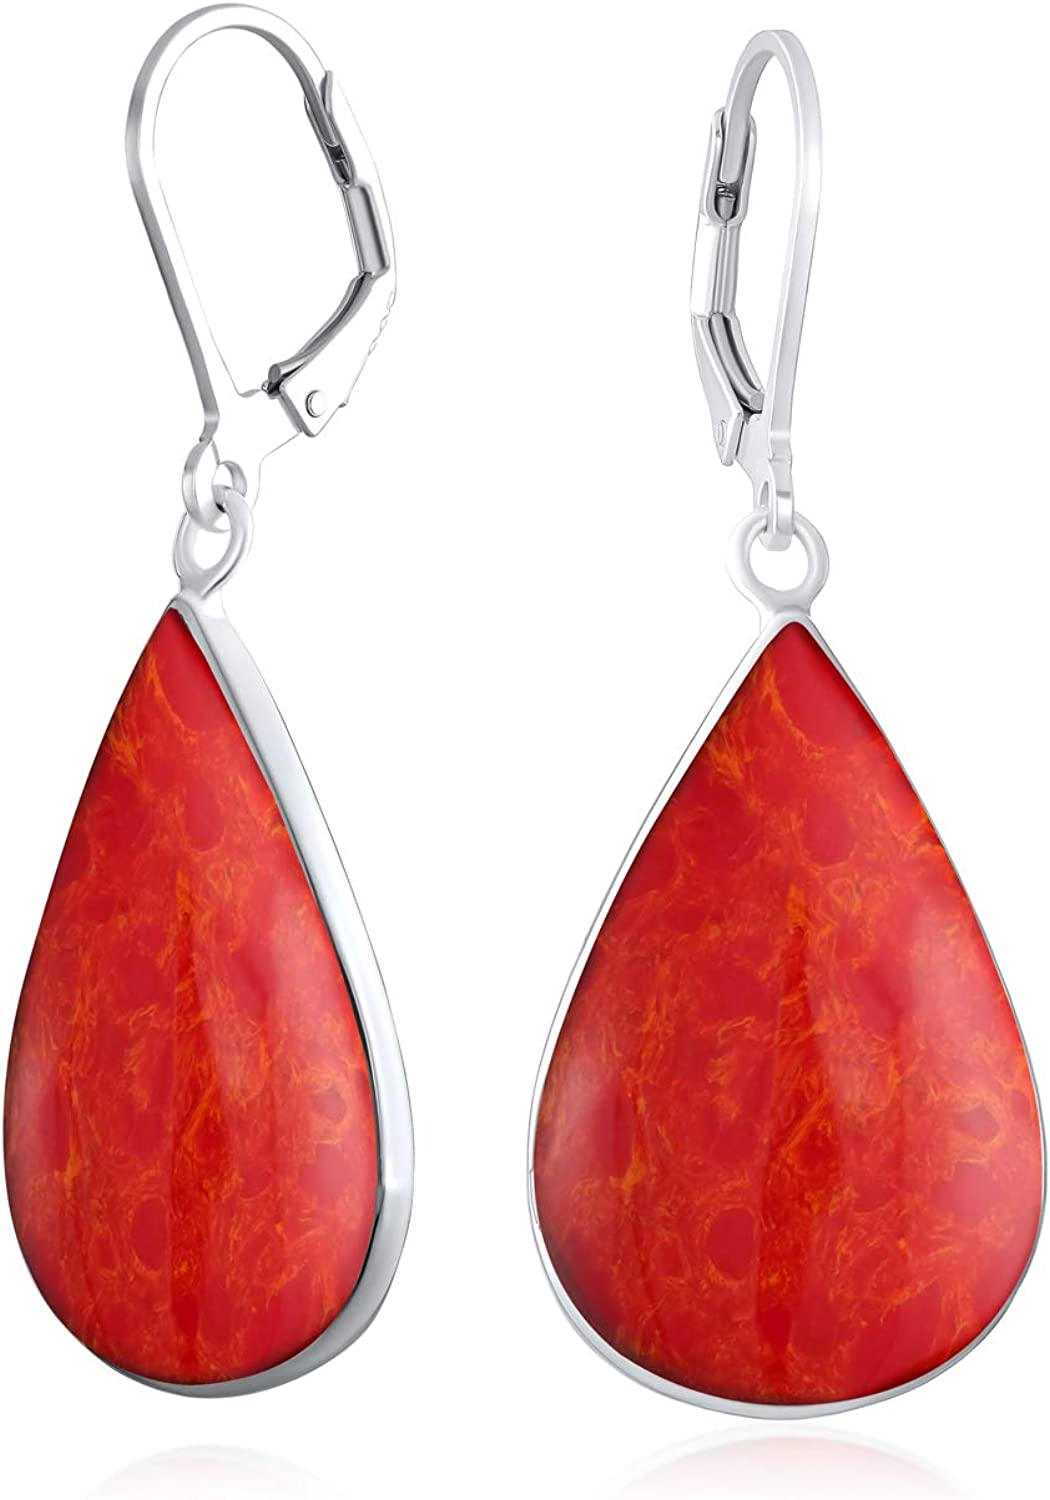 Large Courier shipping free shipping Shell Natural Genuine Gemstones Teardrop Shaped Pear Dangl Ranking TOP18